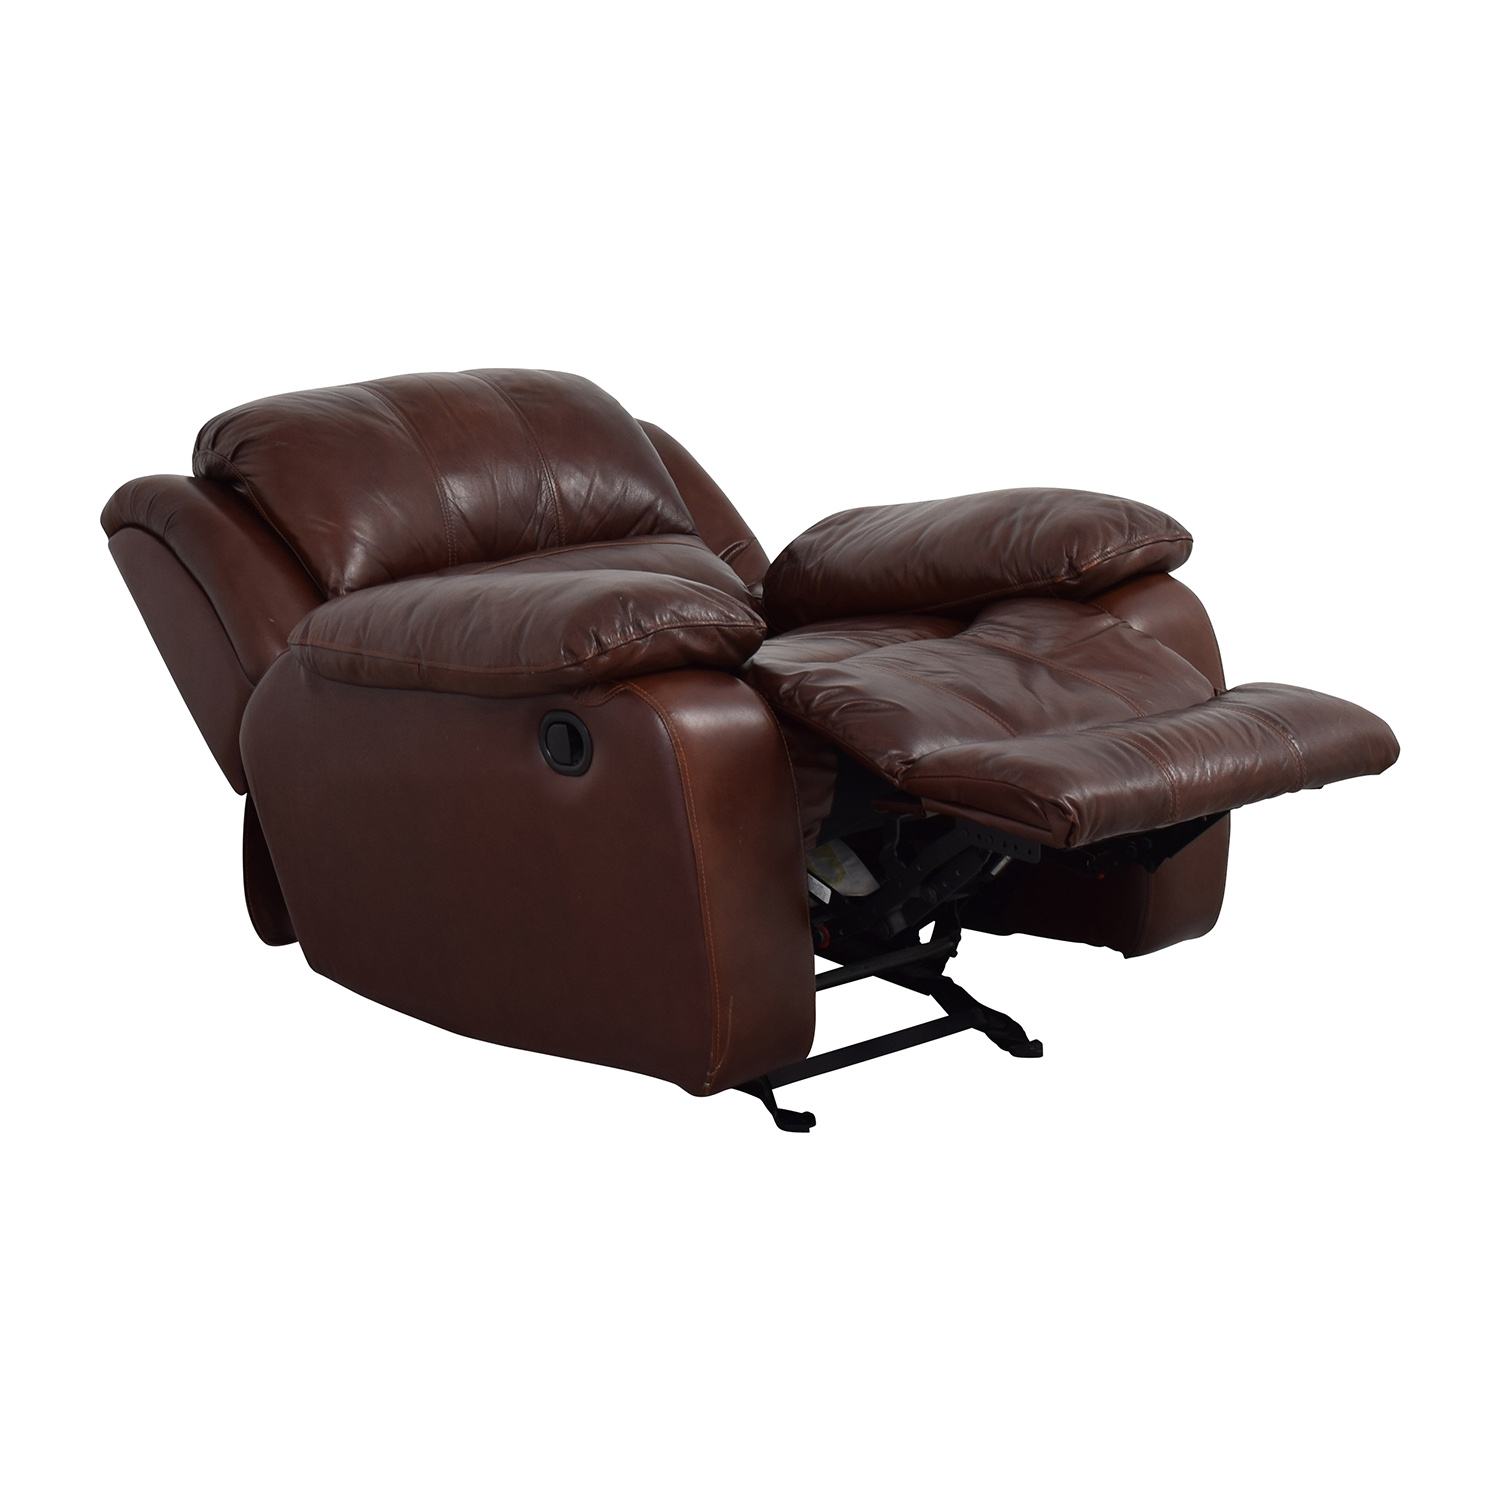 Raymour and Flanigan Raymour and Flanigan Bryant II Leather Glider Recliner discount